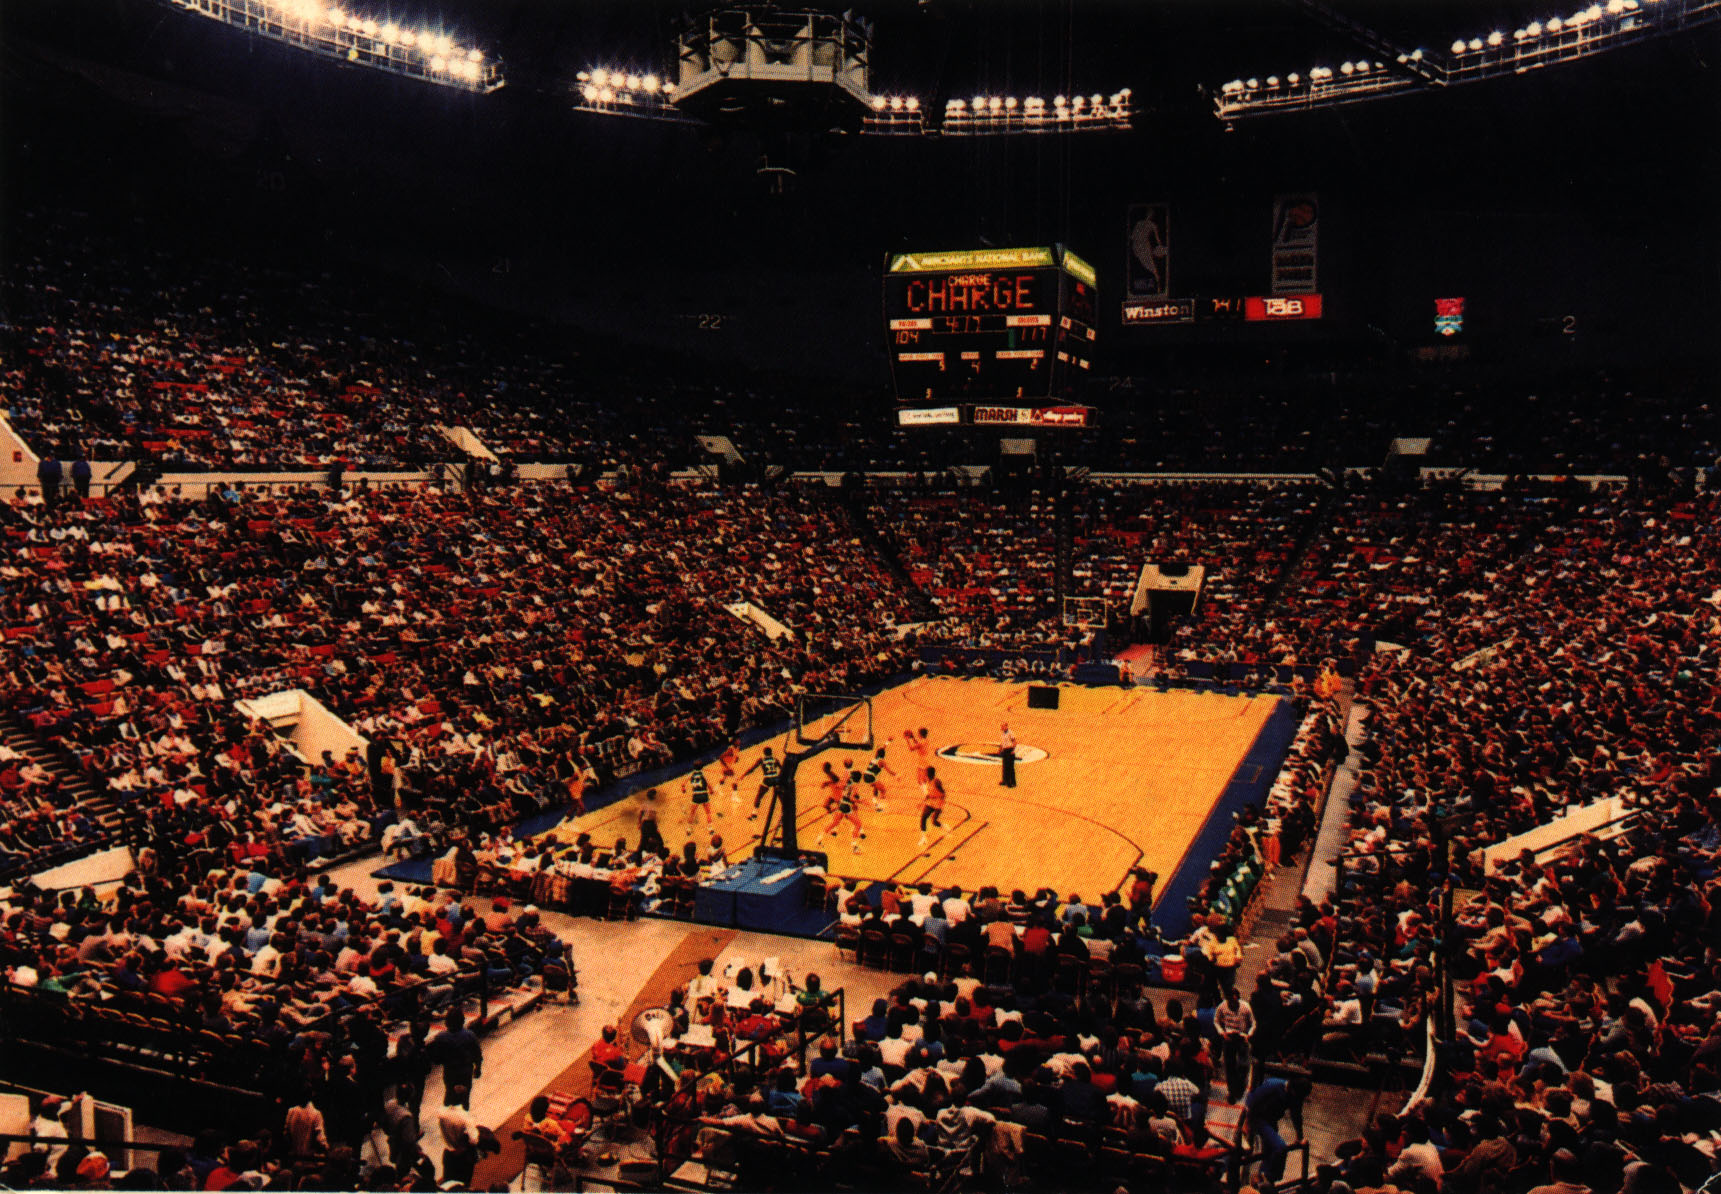 Market Square Arena [Indianapolis] | Lost Indiana